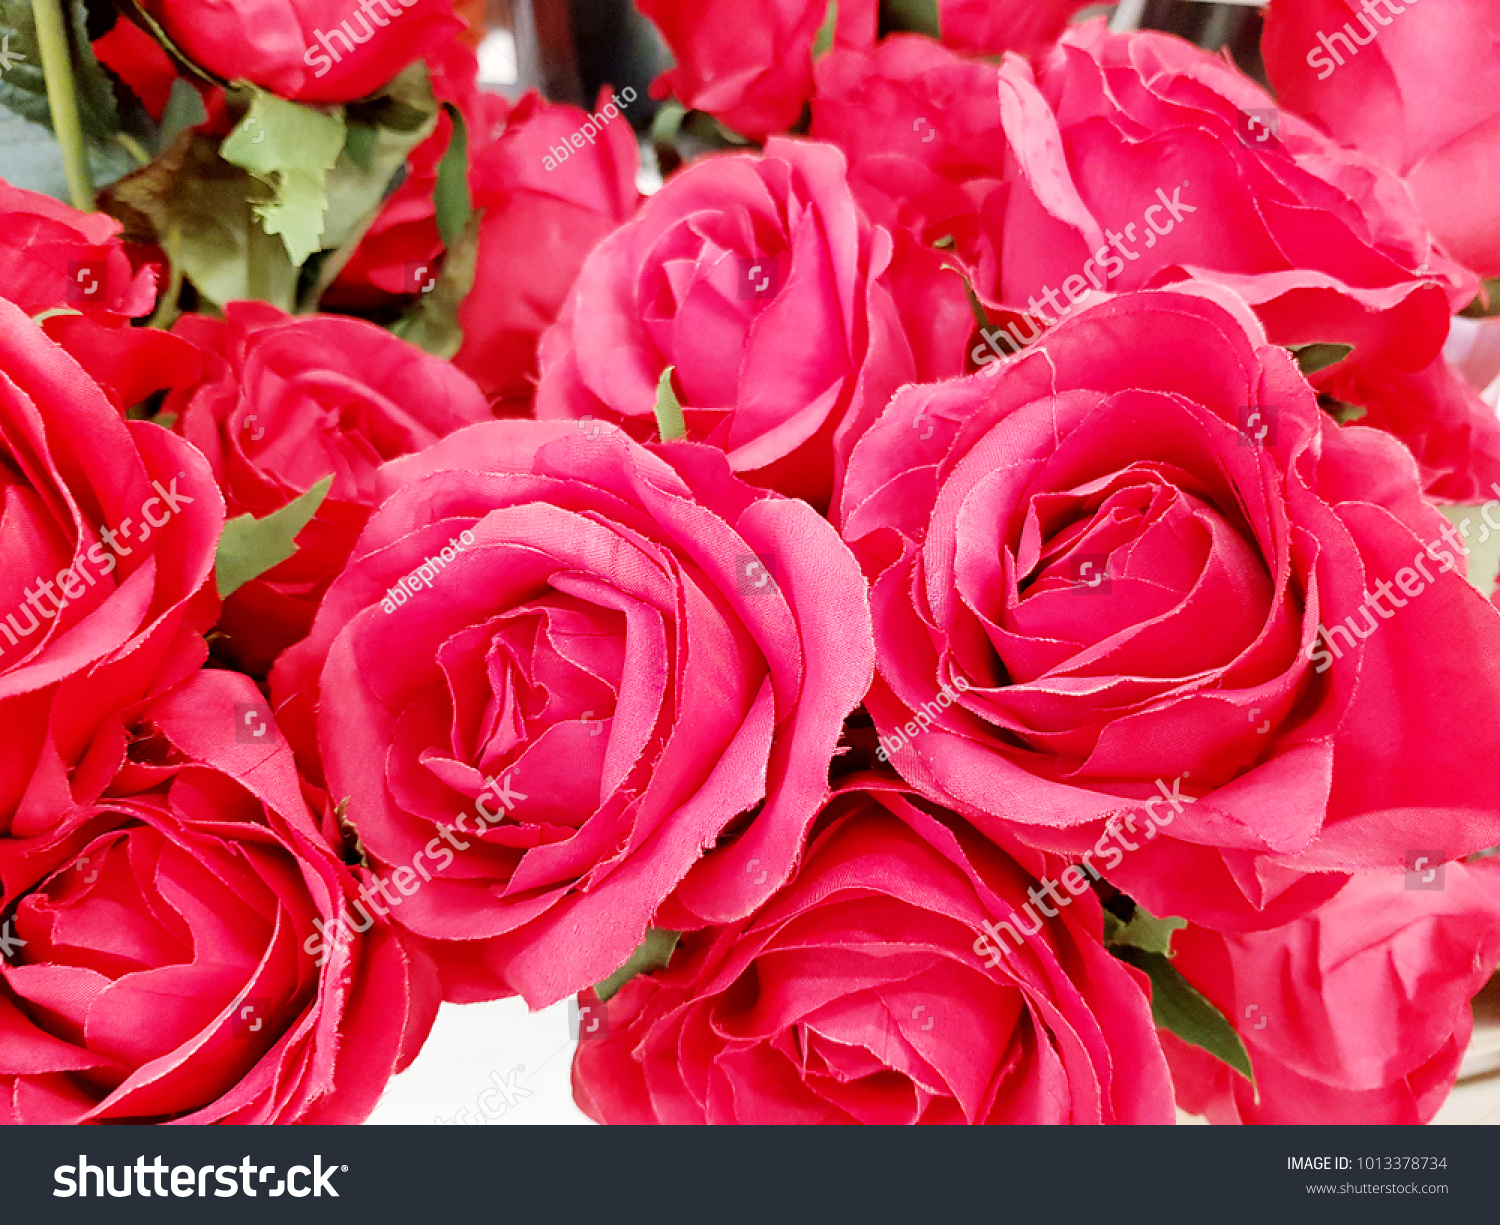 Red Roses Are Beautiful Flowers With Give Love Ez Canvas